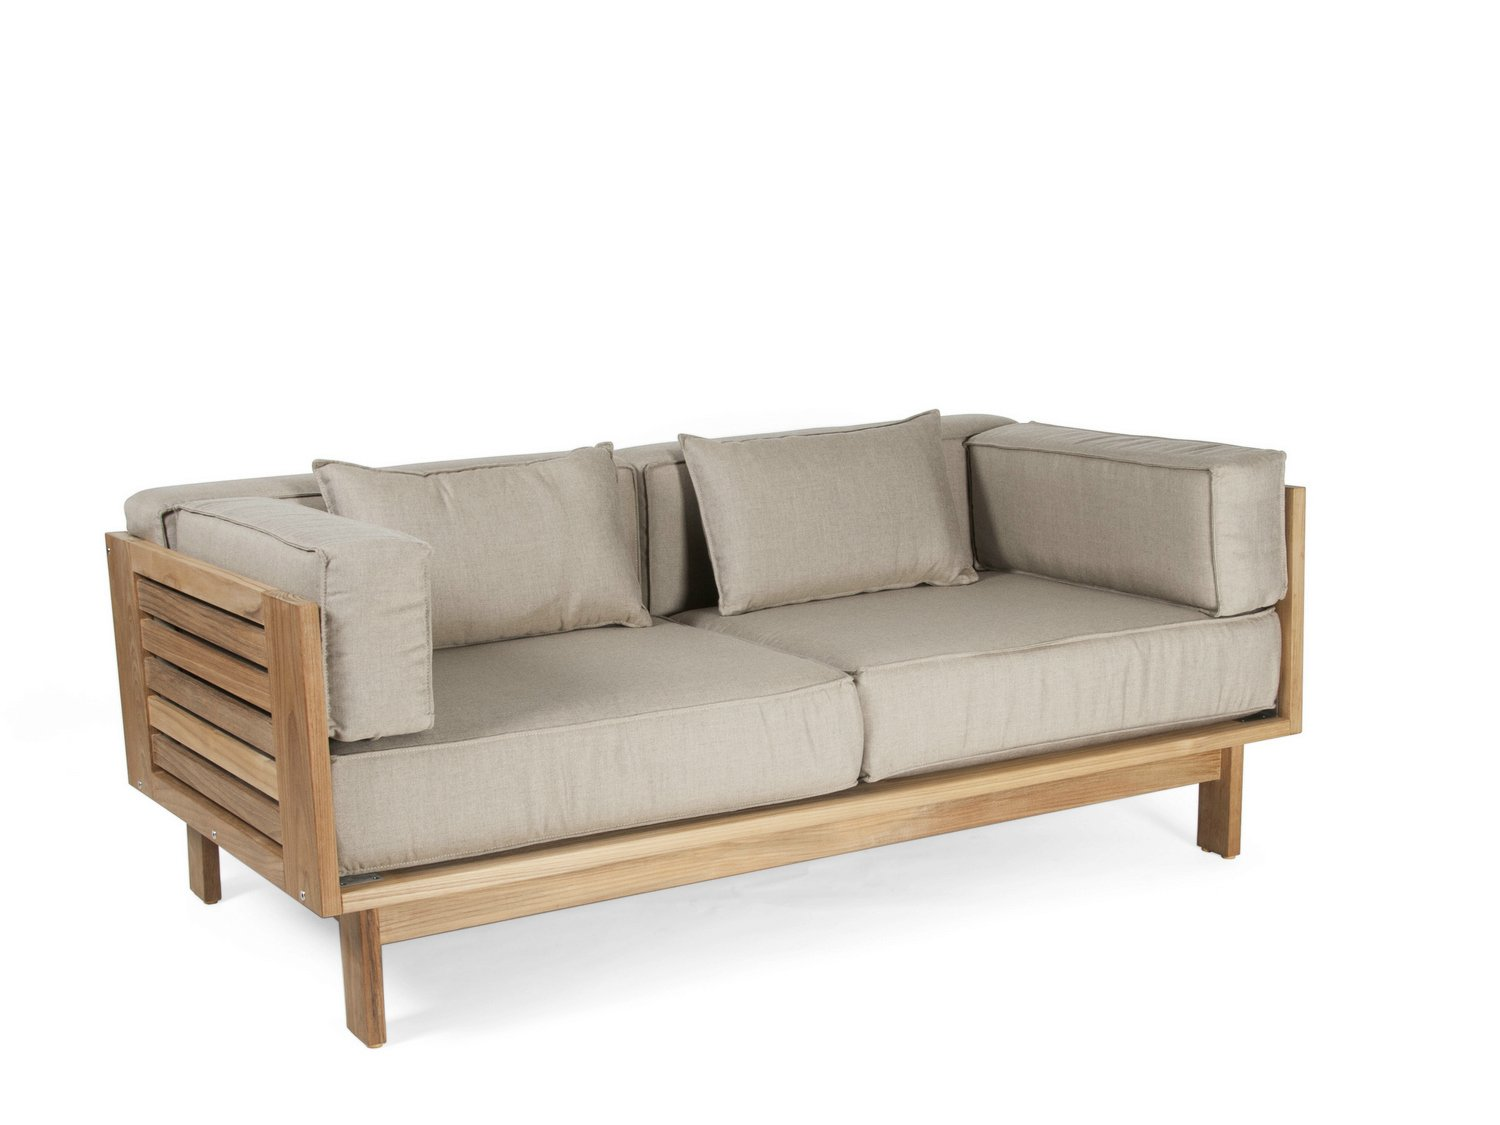 falsterbo 2 seater garden sofa by skargaarden design carl